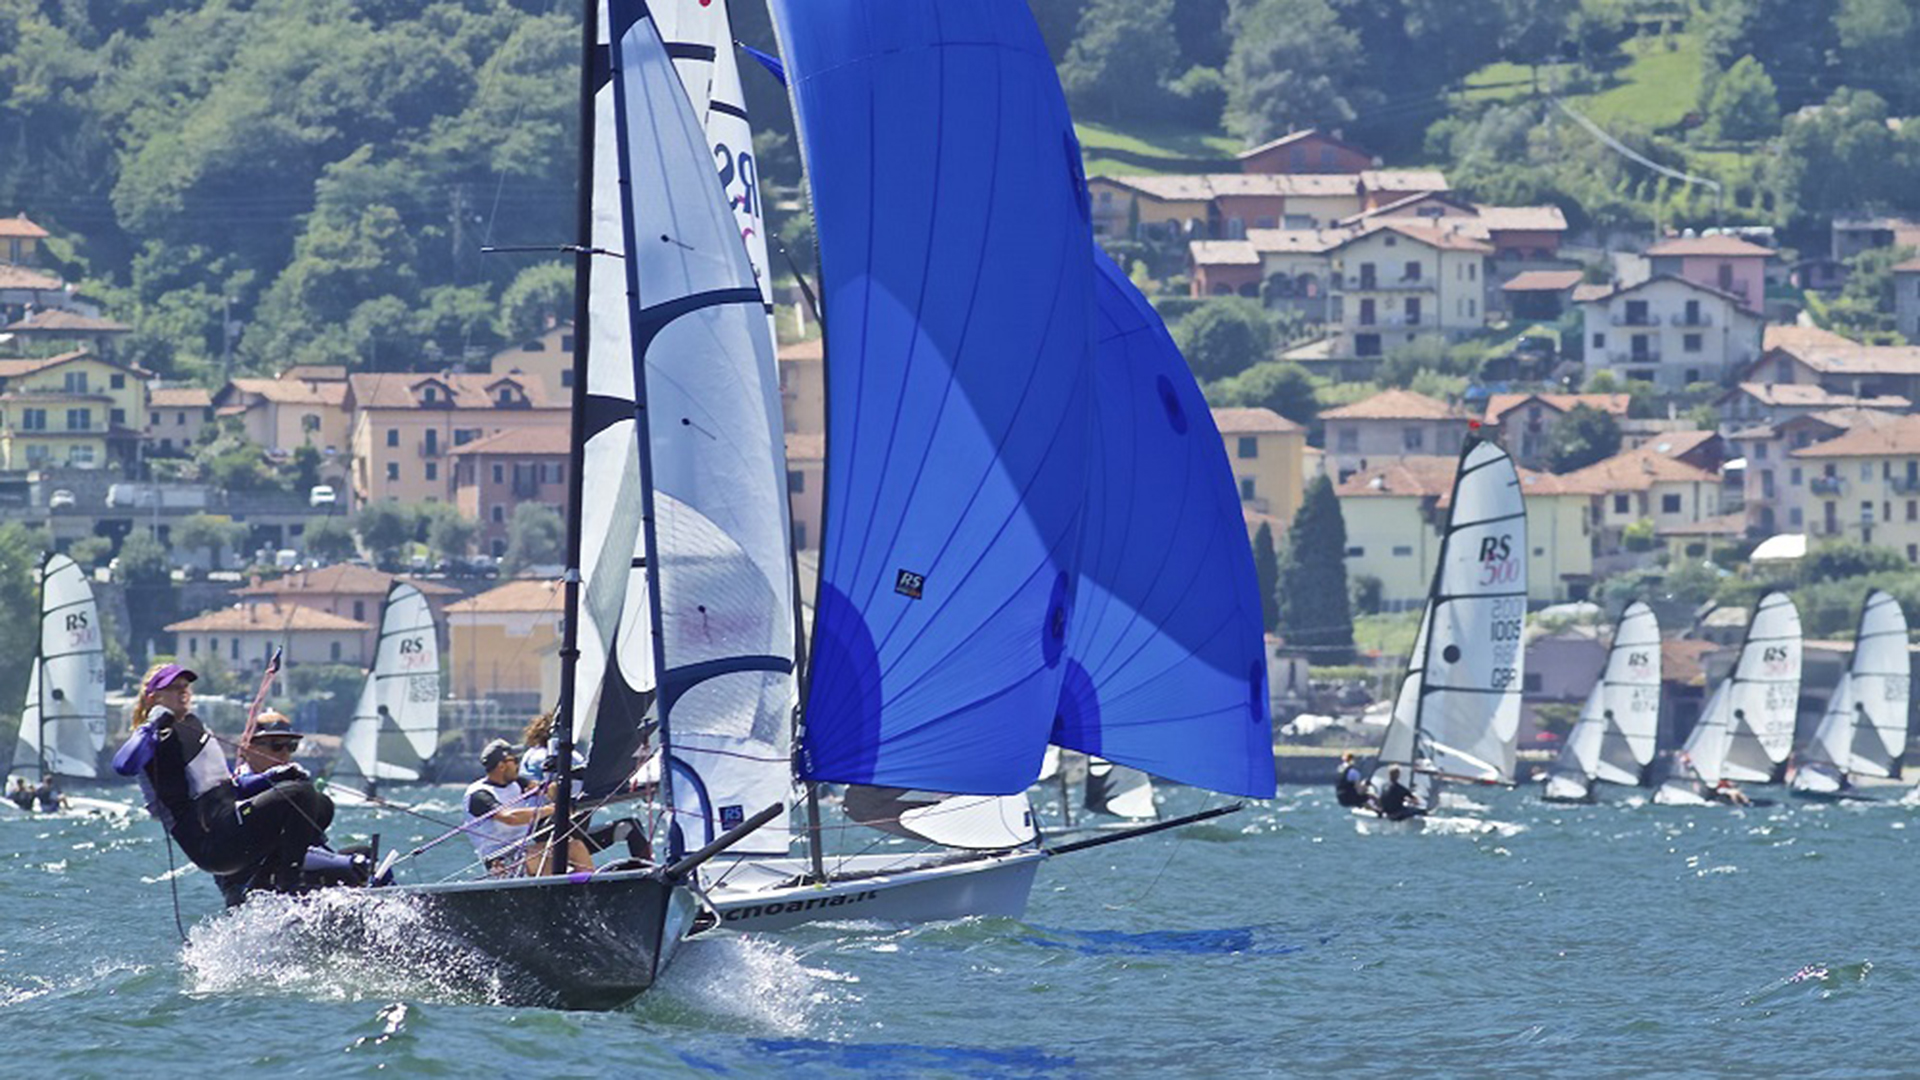 RS500 World Championships 2017 - RS Sailing, the world's ...